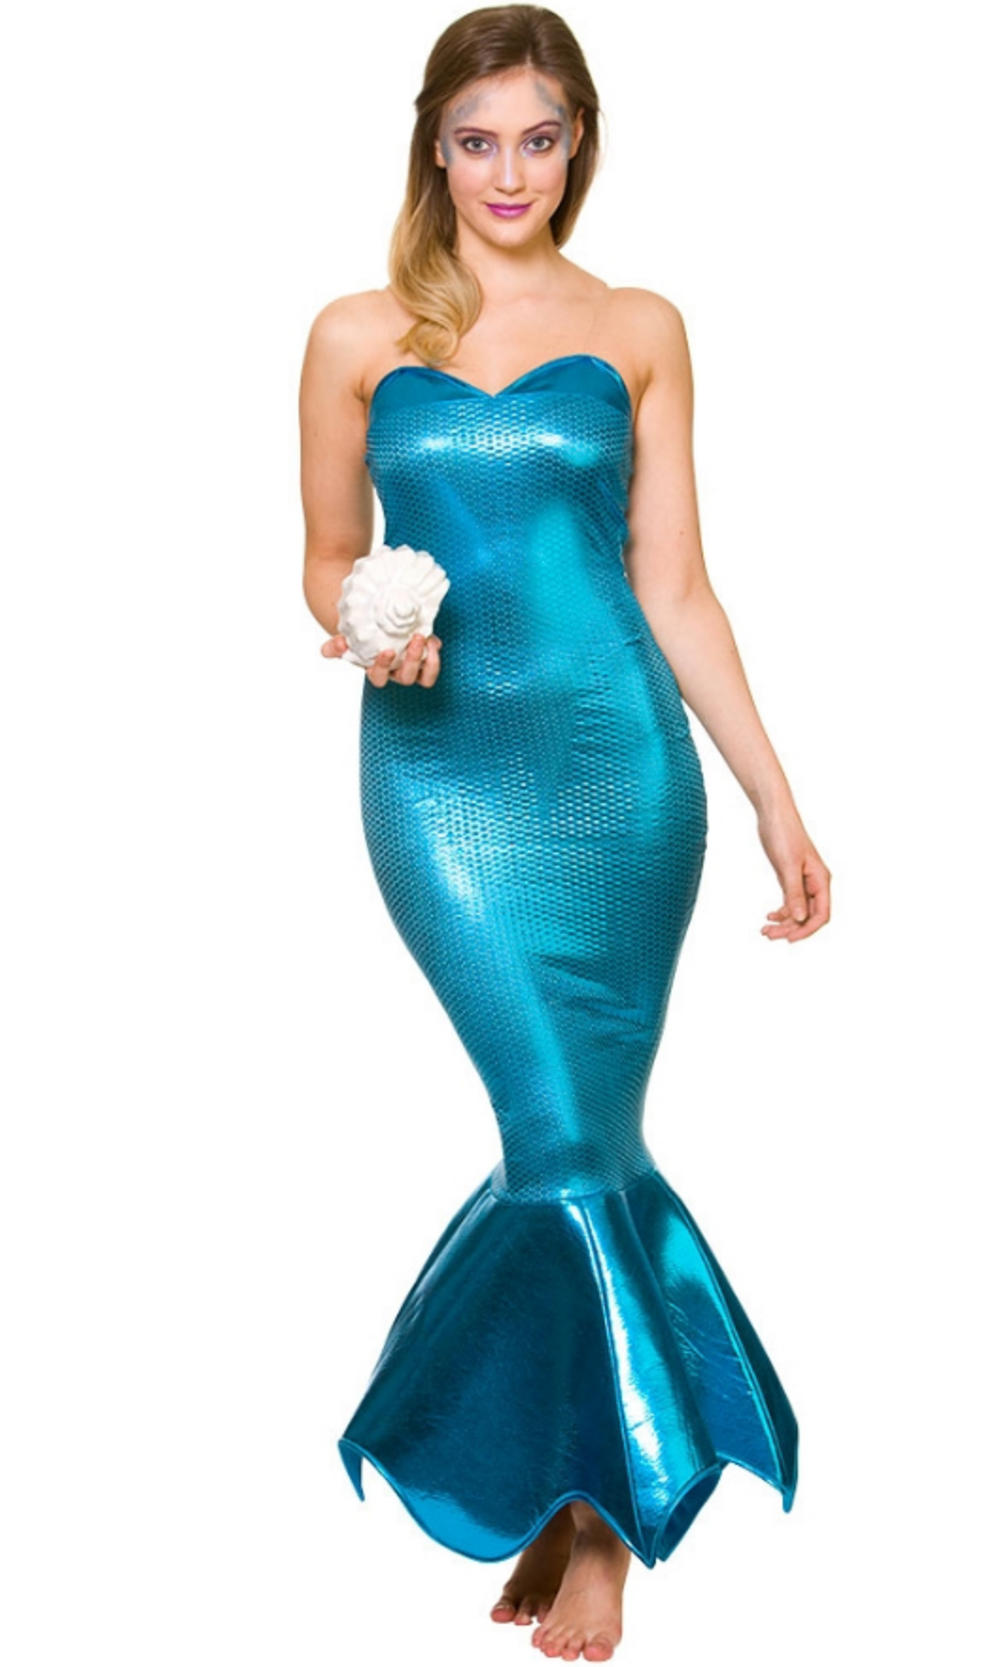 Mermaid Beauty Ladies Costume